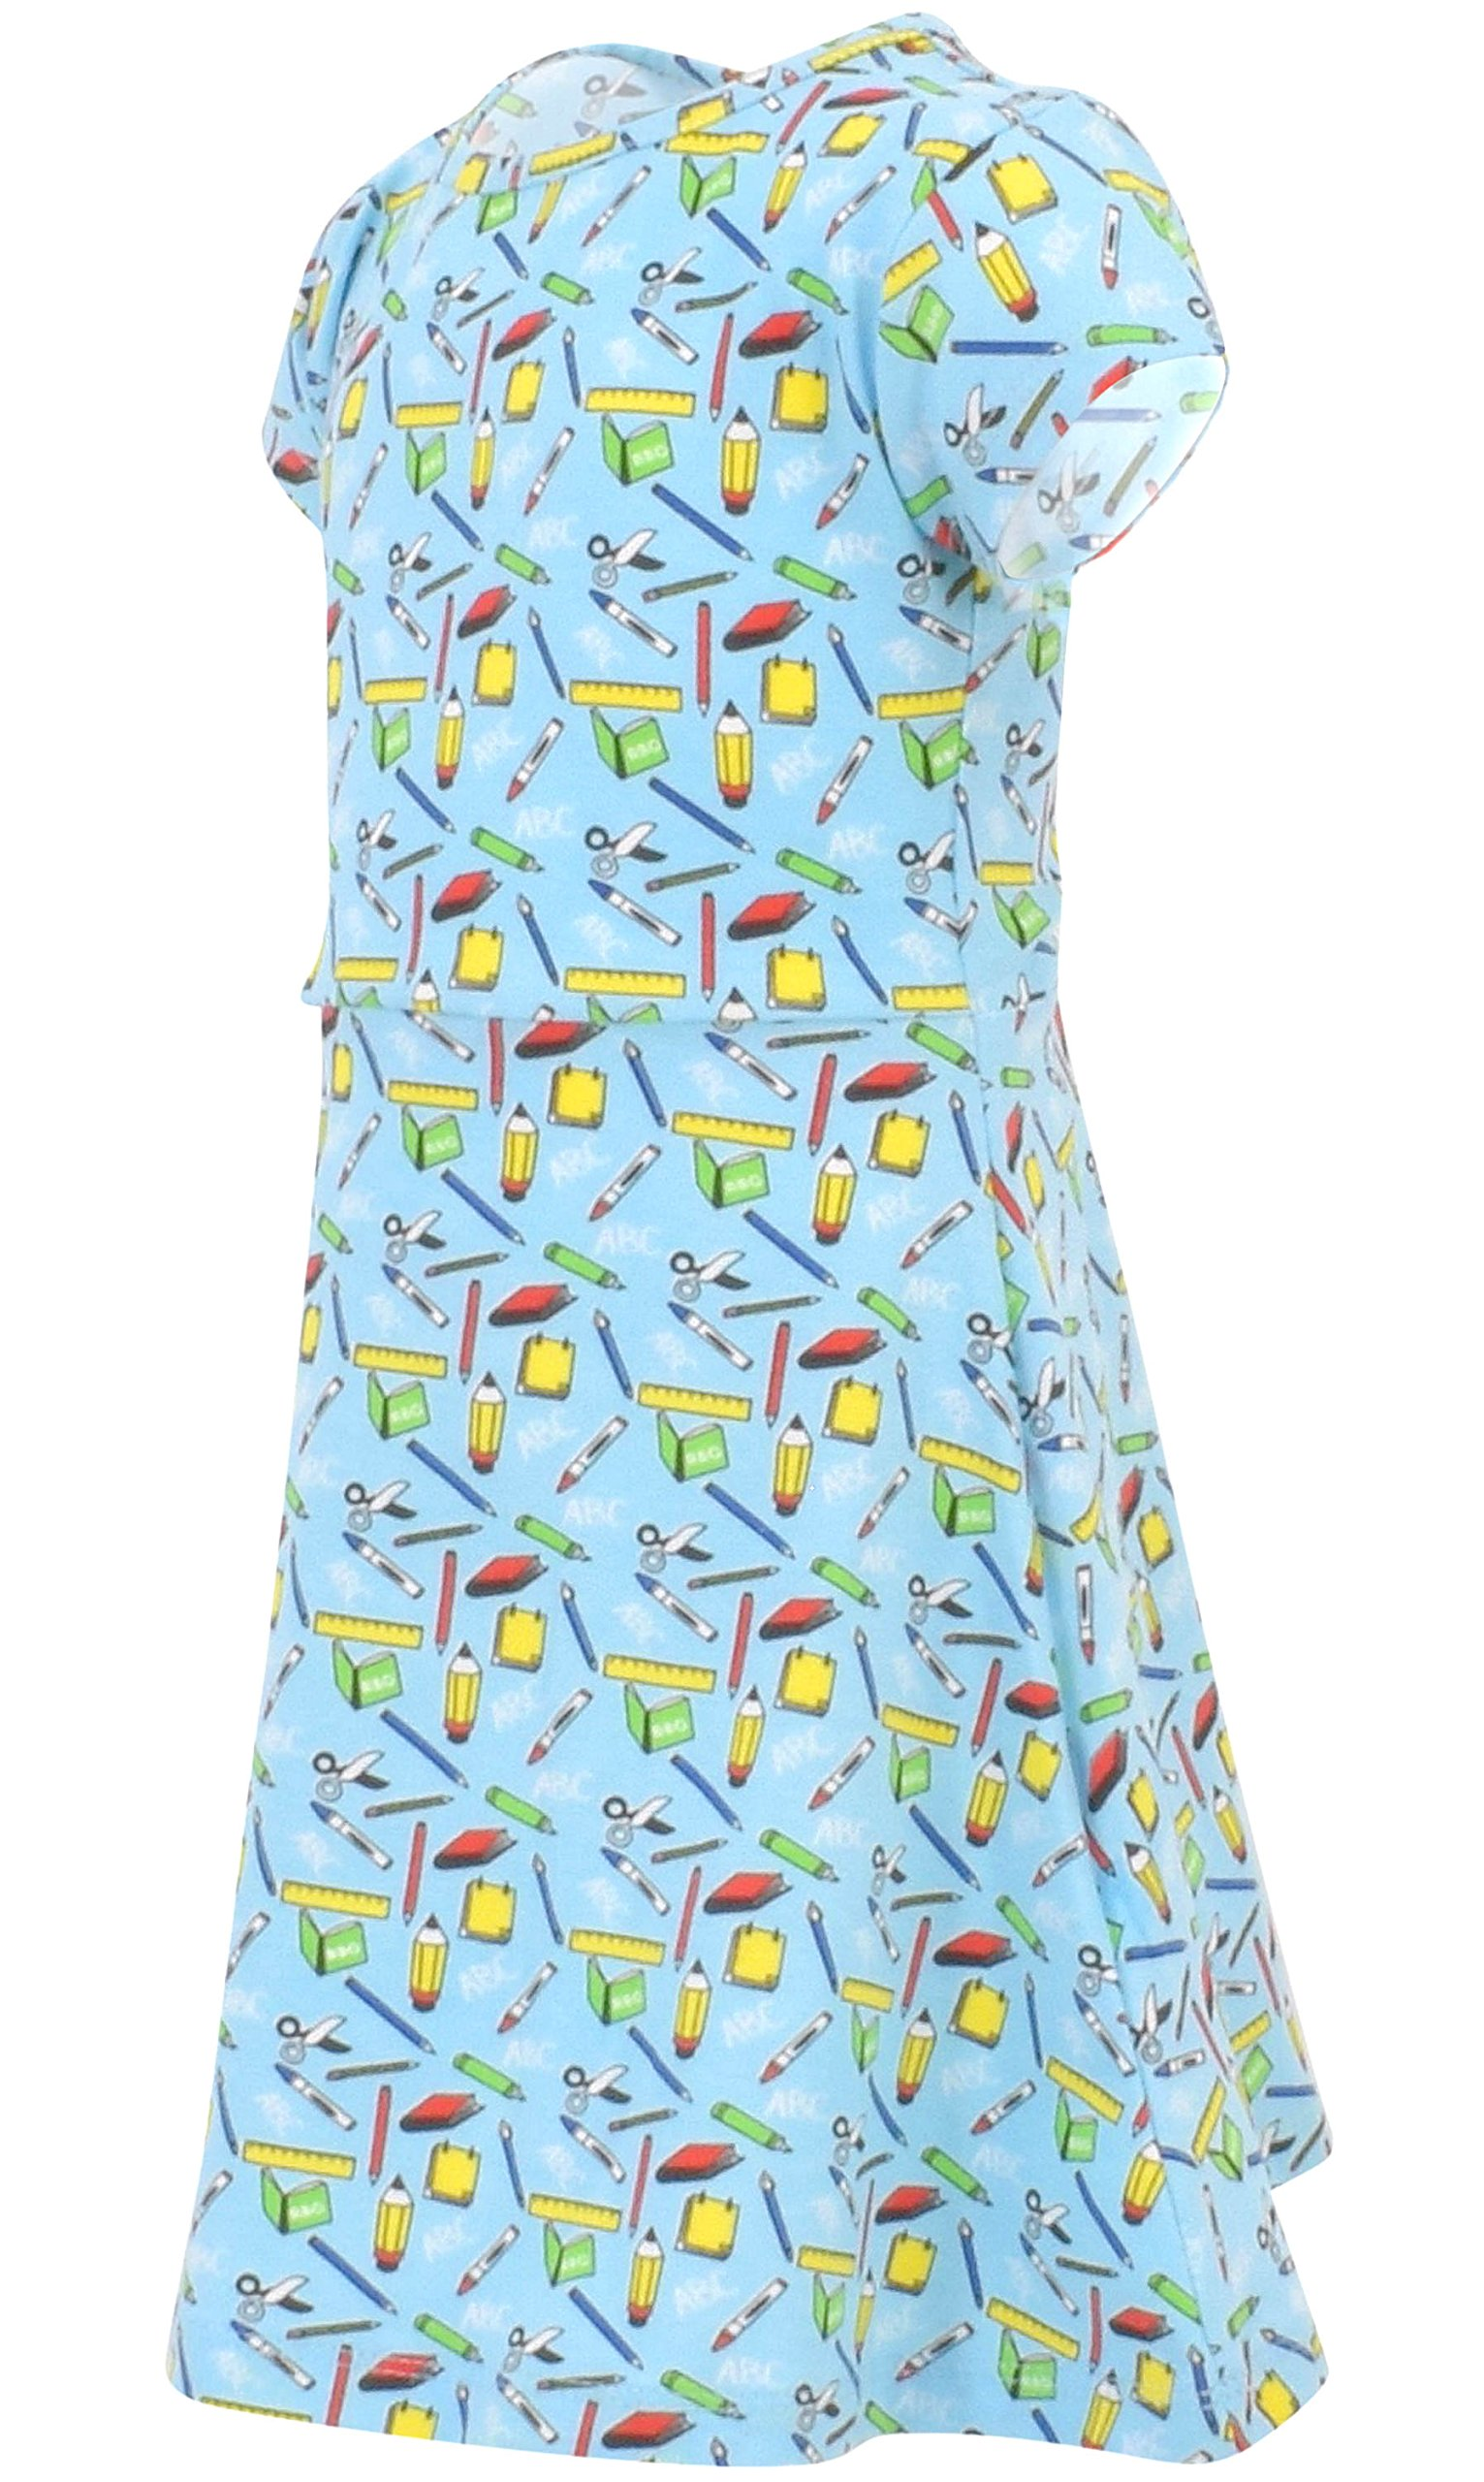 Unique Baby Girls Back to School Dress (6, Blue) by Unique Baby (Image #3)